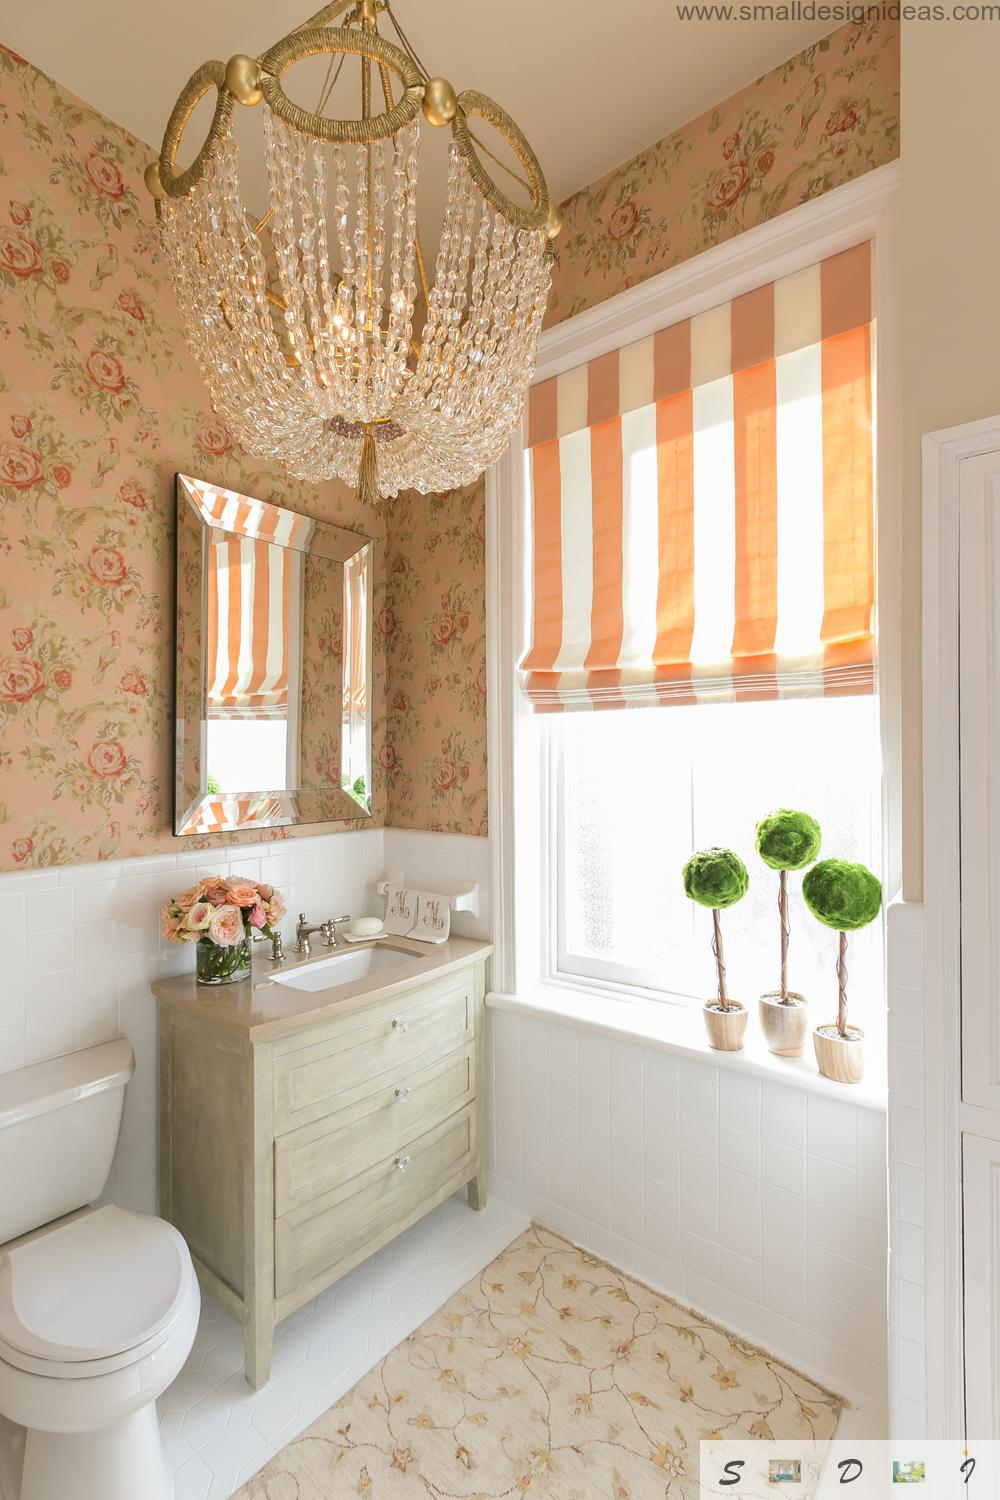 classic style small bathroom remodel